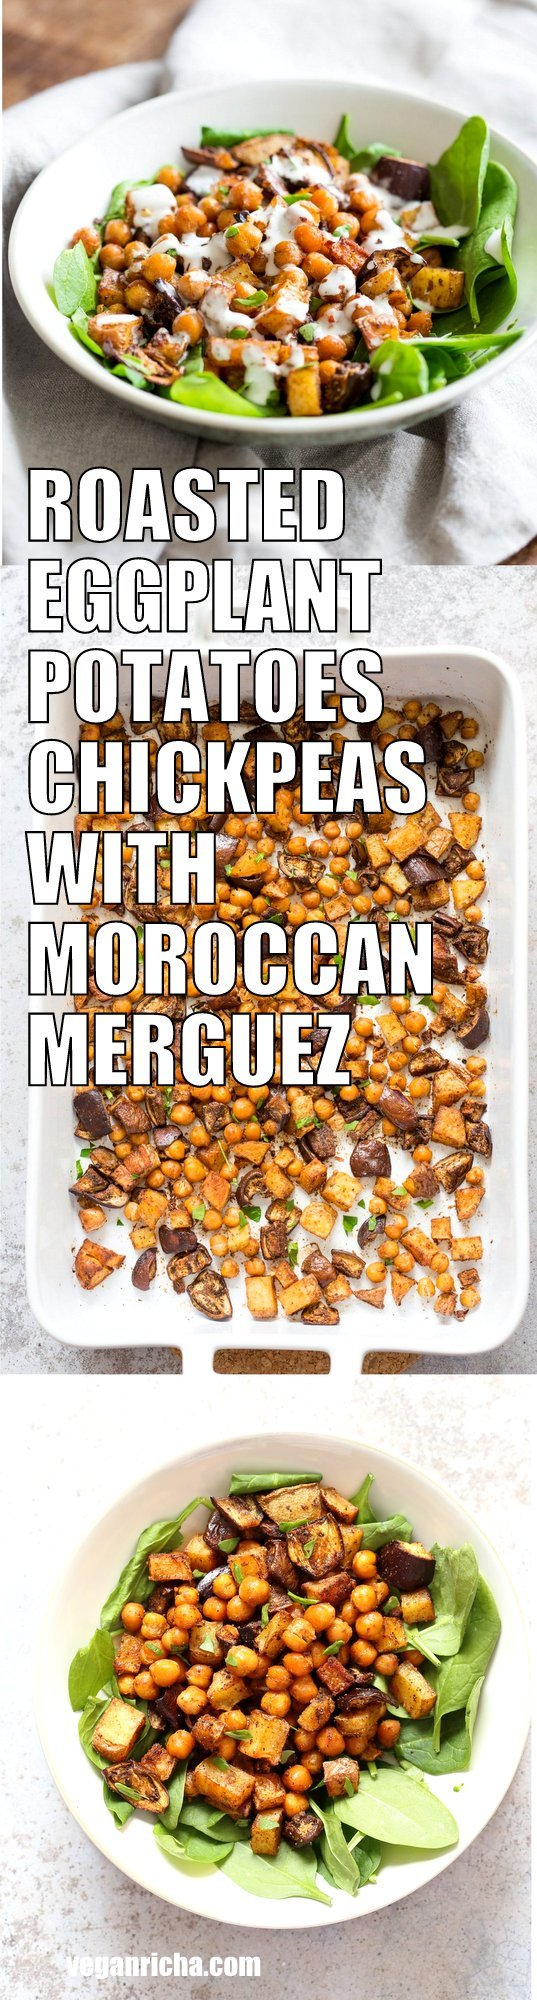 Roasted Eggplant Potatoes Chickpeas with Moroccan Merguez seasoning. 1 Pan Sheet-pan Dinner! Veggies tossed in cumin, pepper, cinnamon, paprika blend, roasted then served with tahini dressing. #Vegan #Glutenfree #soyfree #Recipe #veganricha | VeganRicha.com